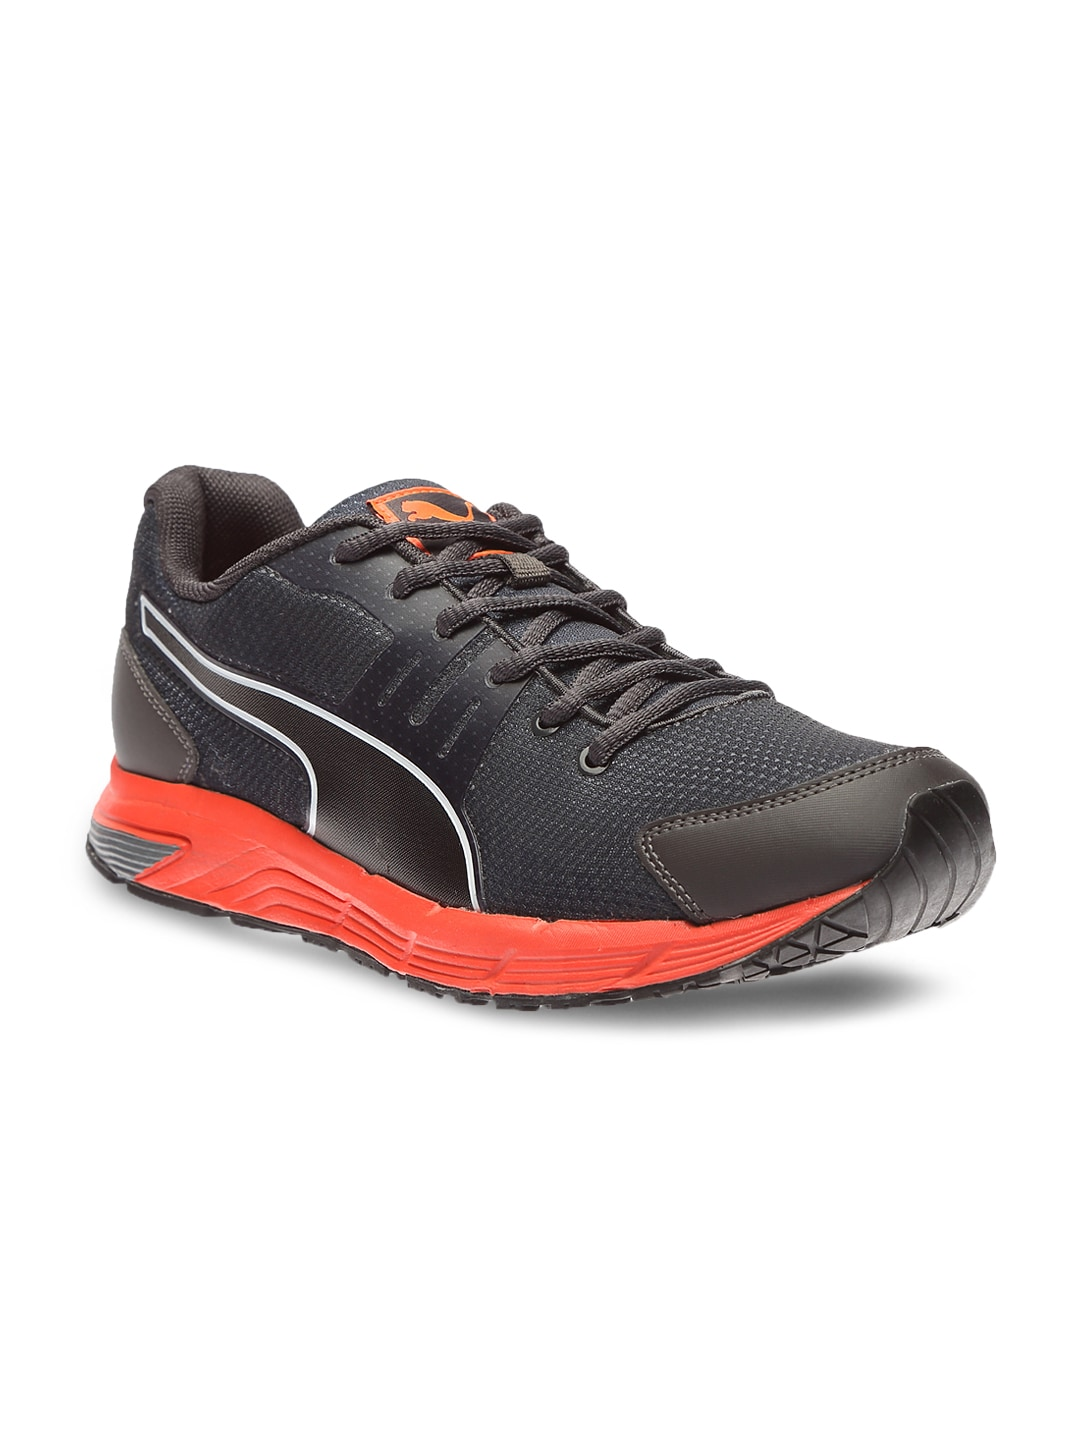 OnlineMyntra Sport Shoes Buy For Menamp; Sports Women R4AjL35q